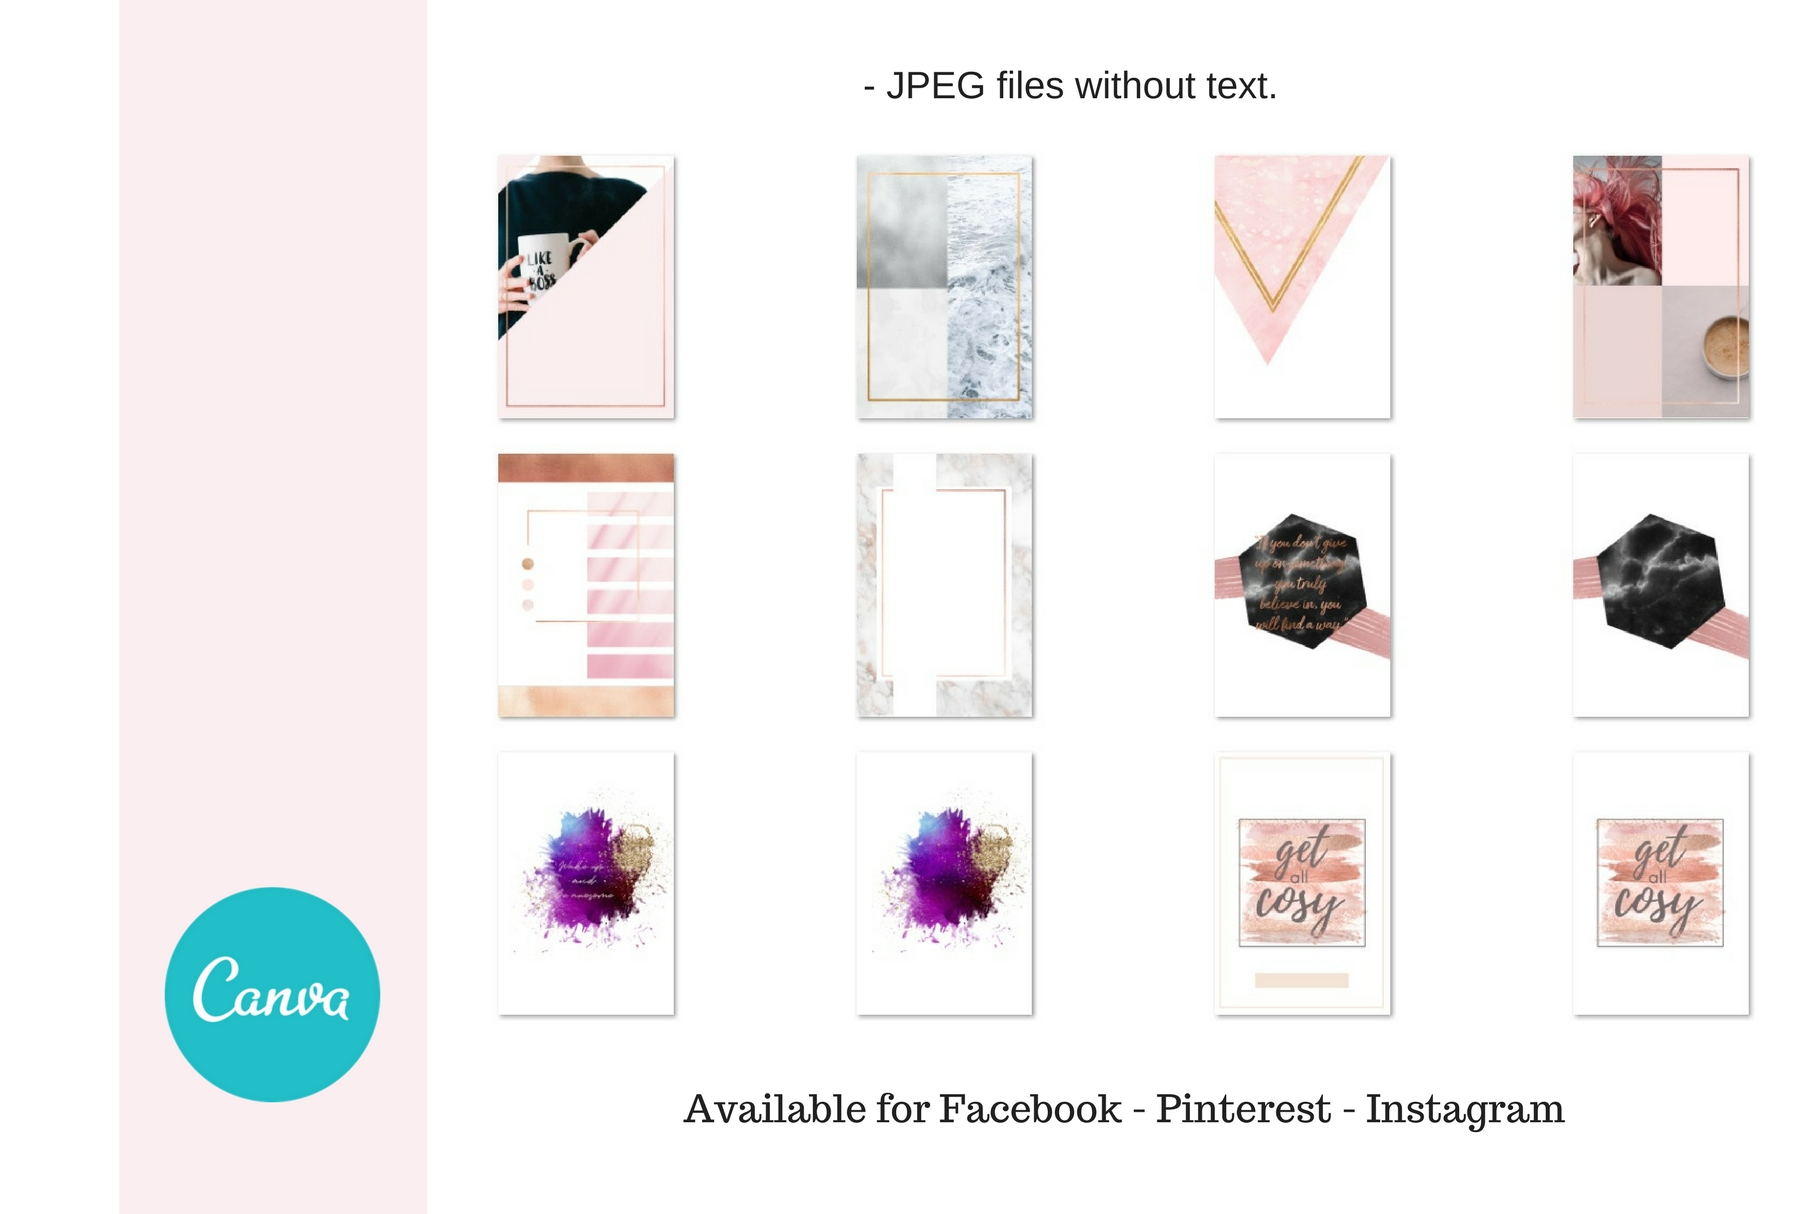 Canva for you - Social media example image 7